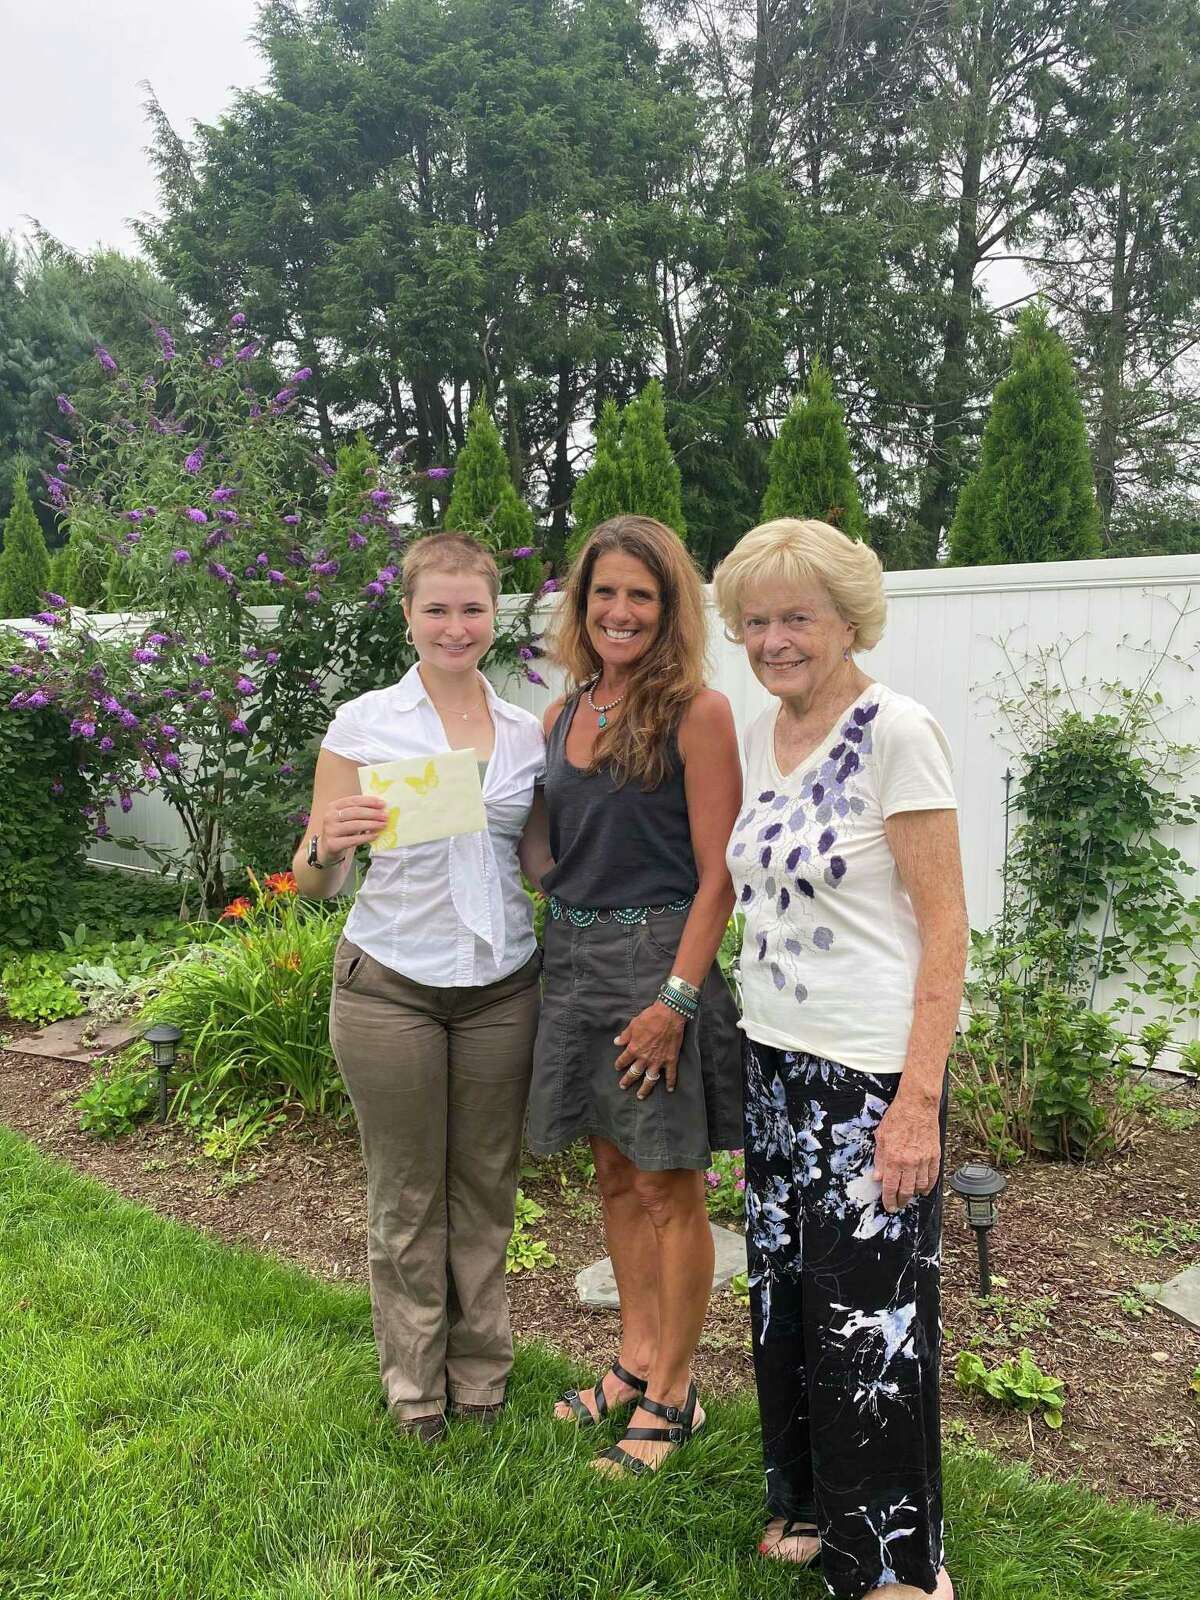 The Greenfield Hill Garden Club of Fairfield has selected Clare Corcoran as recipient of its $1,000 scholarship awarded for a student pursuing horticulture and environmental studies. Entering her junior year in the Rubenstein School of Environmental and Natural Resources at the University of Vermont, Corcoran is a resident of Fairfield.